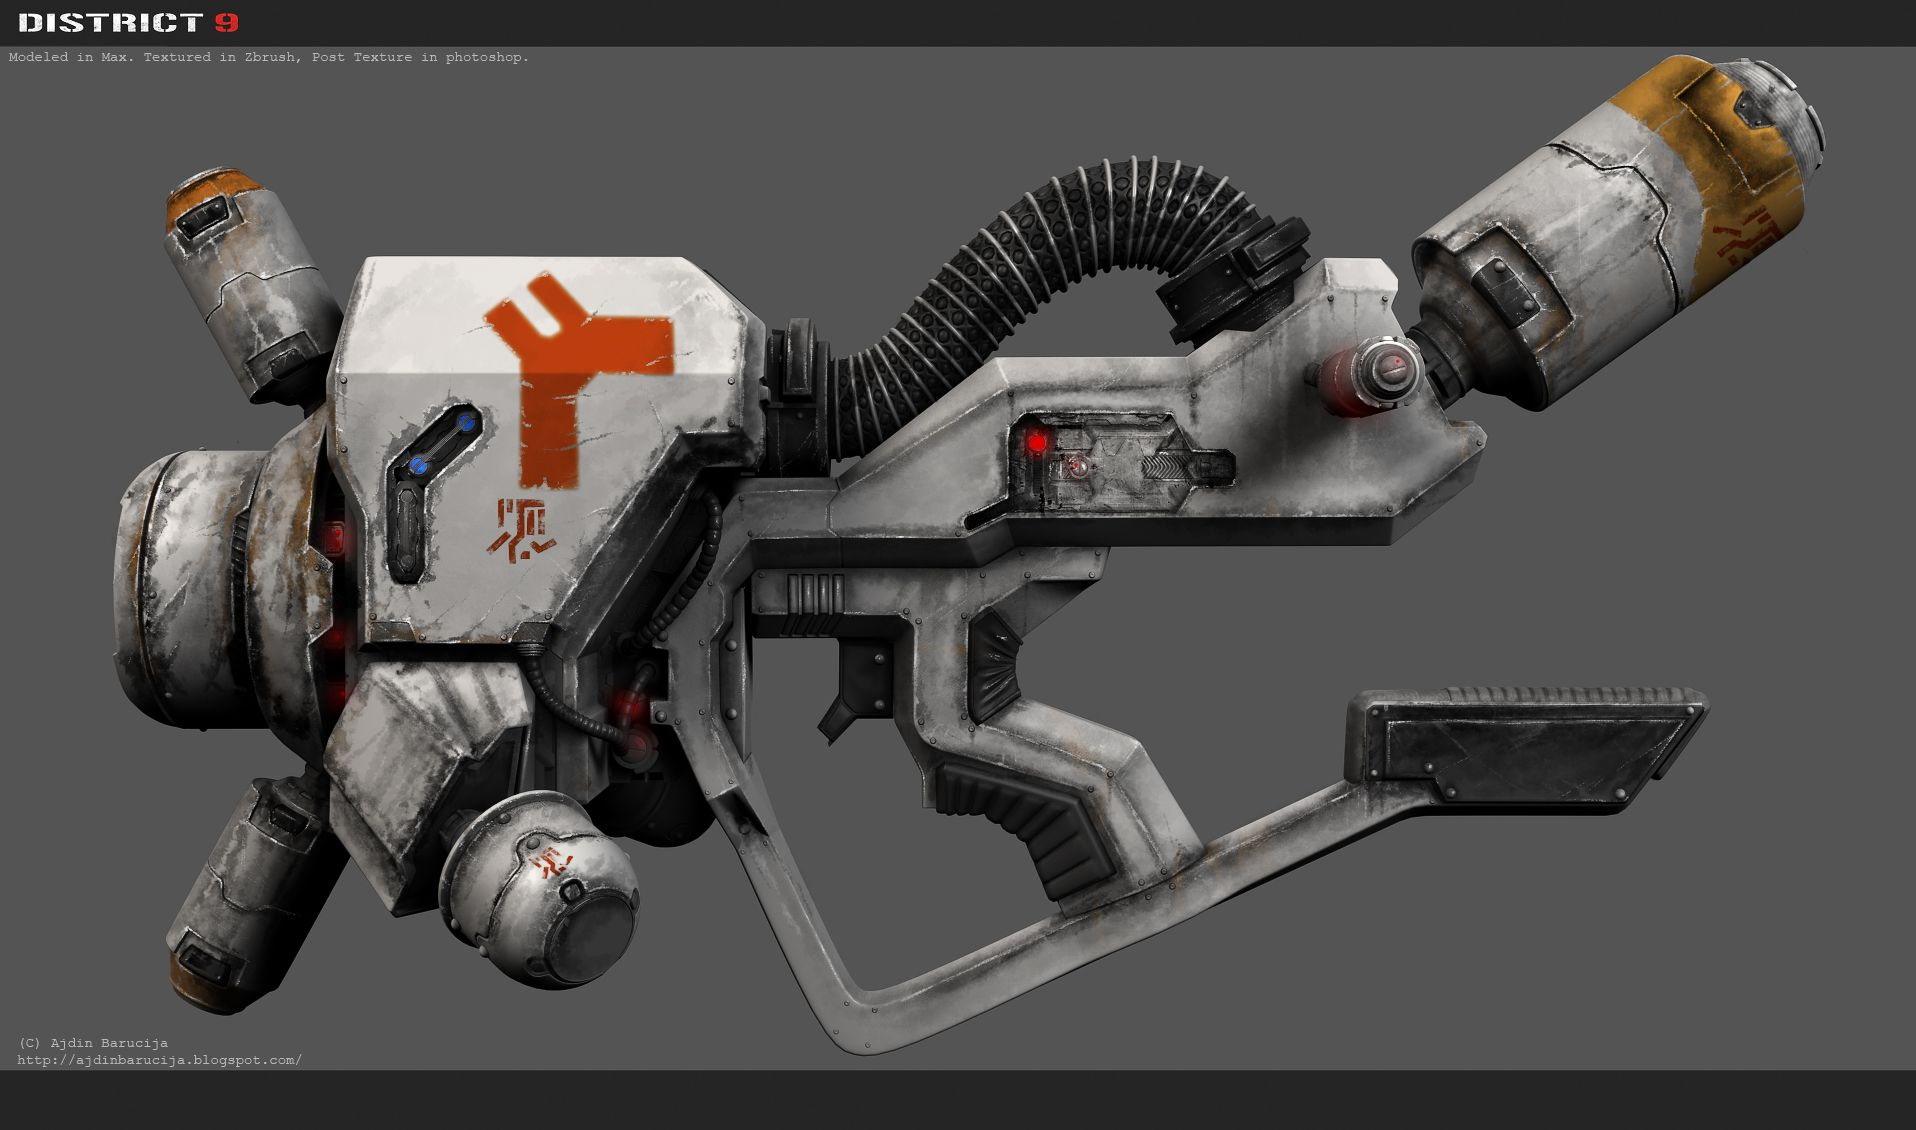 Pin on Weapon Designs